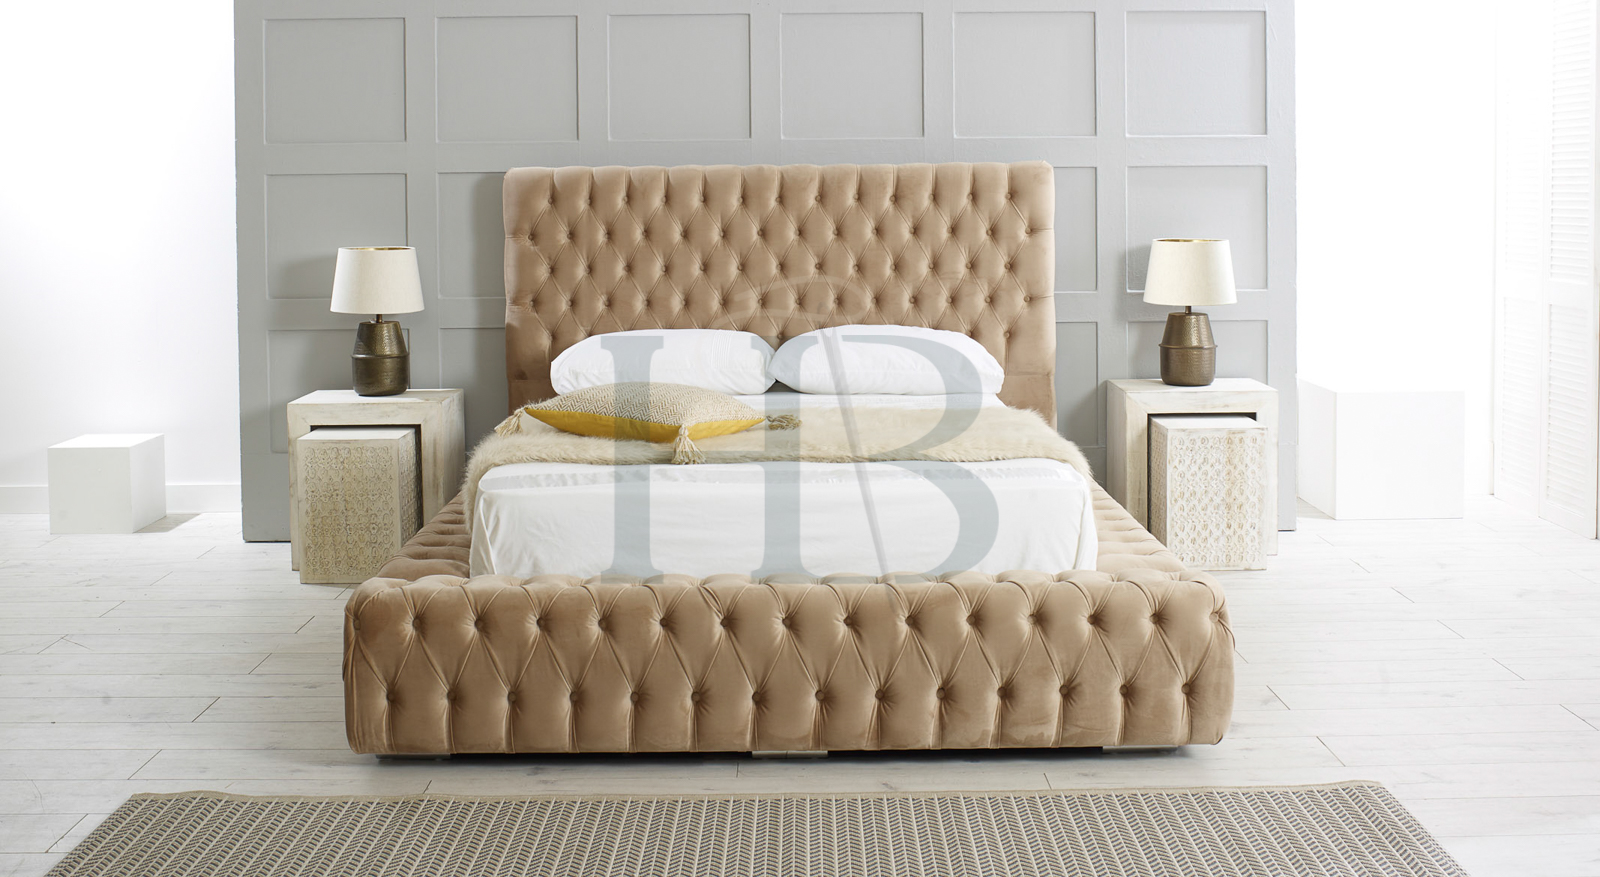 What is the difference between a bed frame and a bedstead?